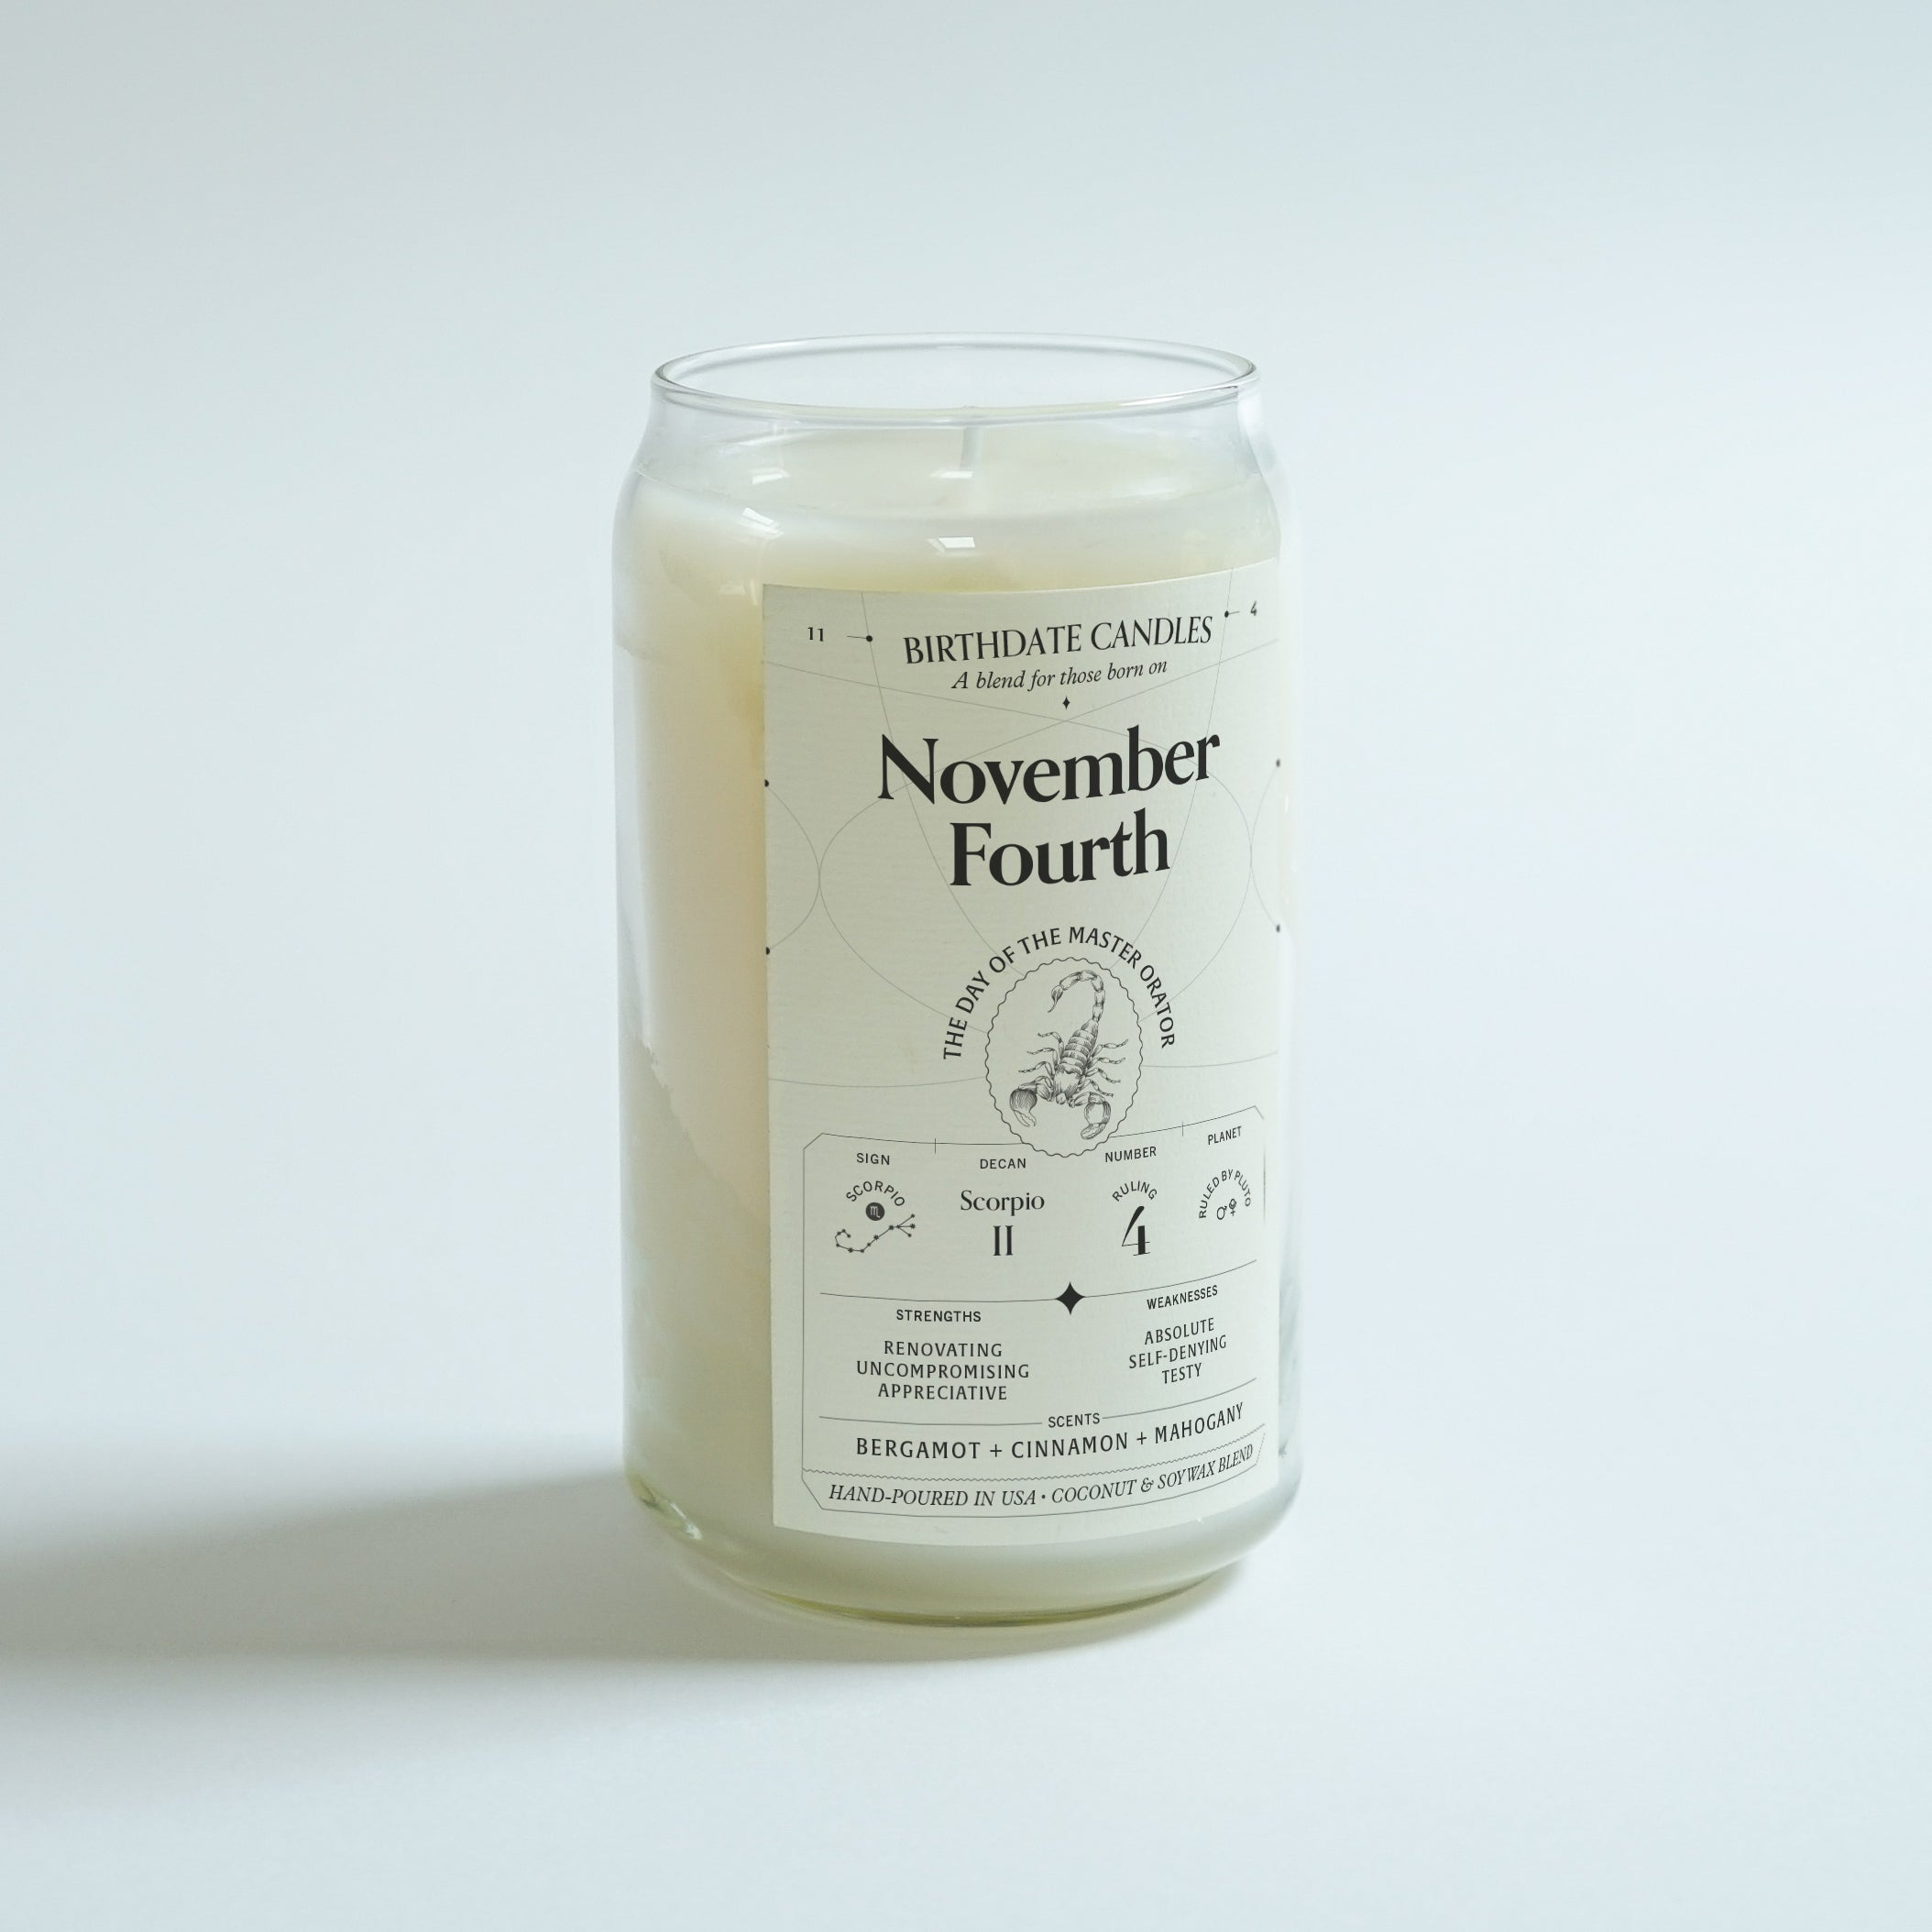 The November Fourth Candle